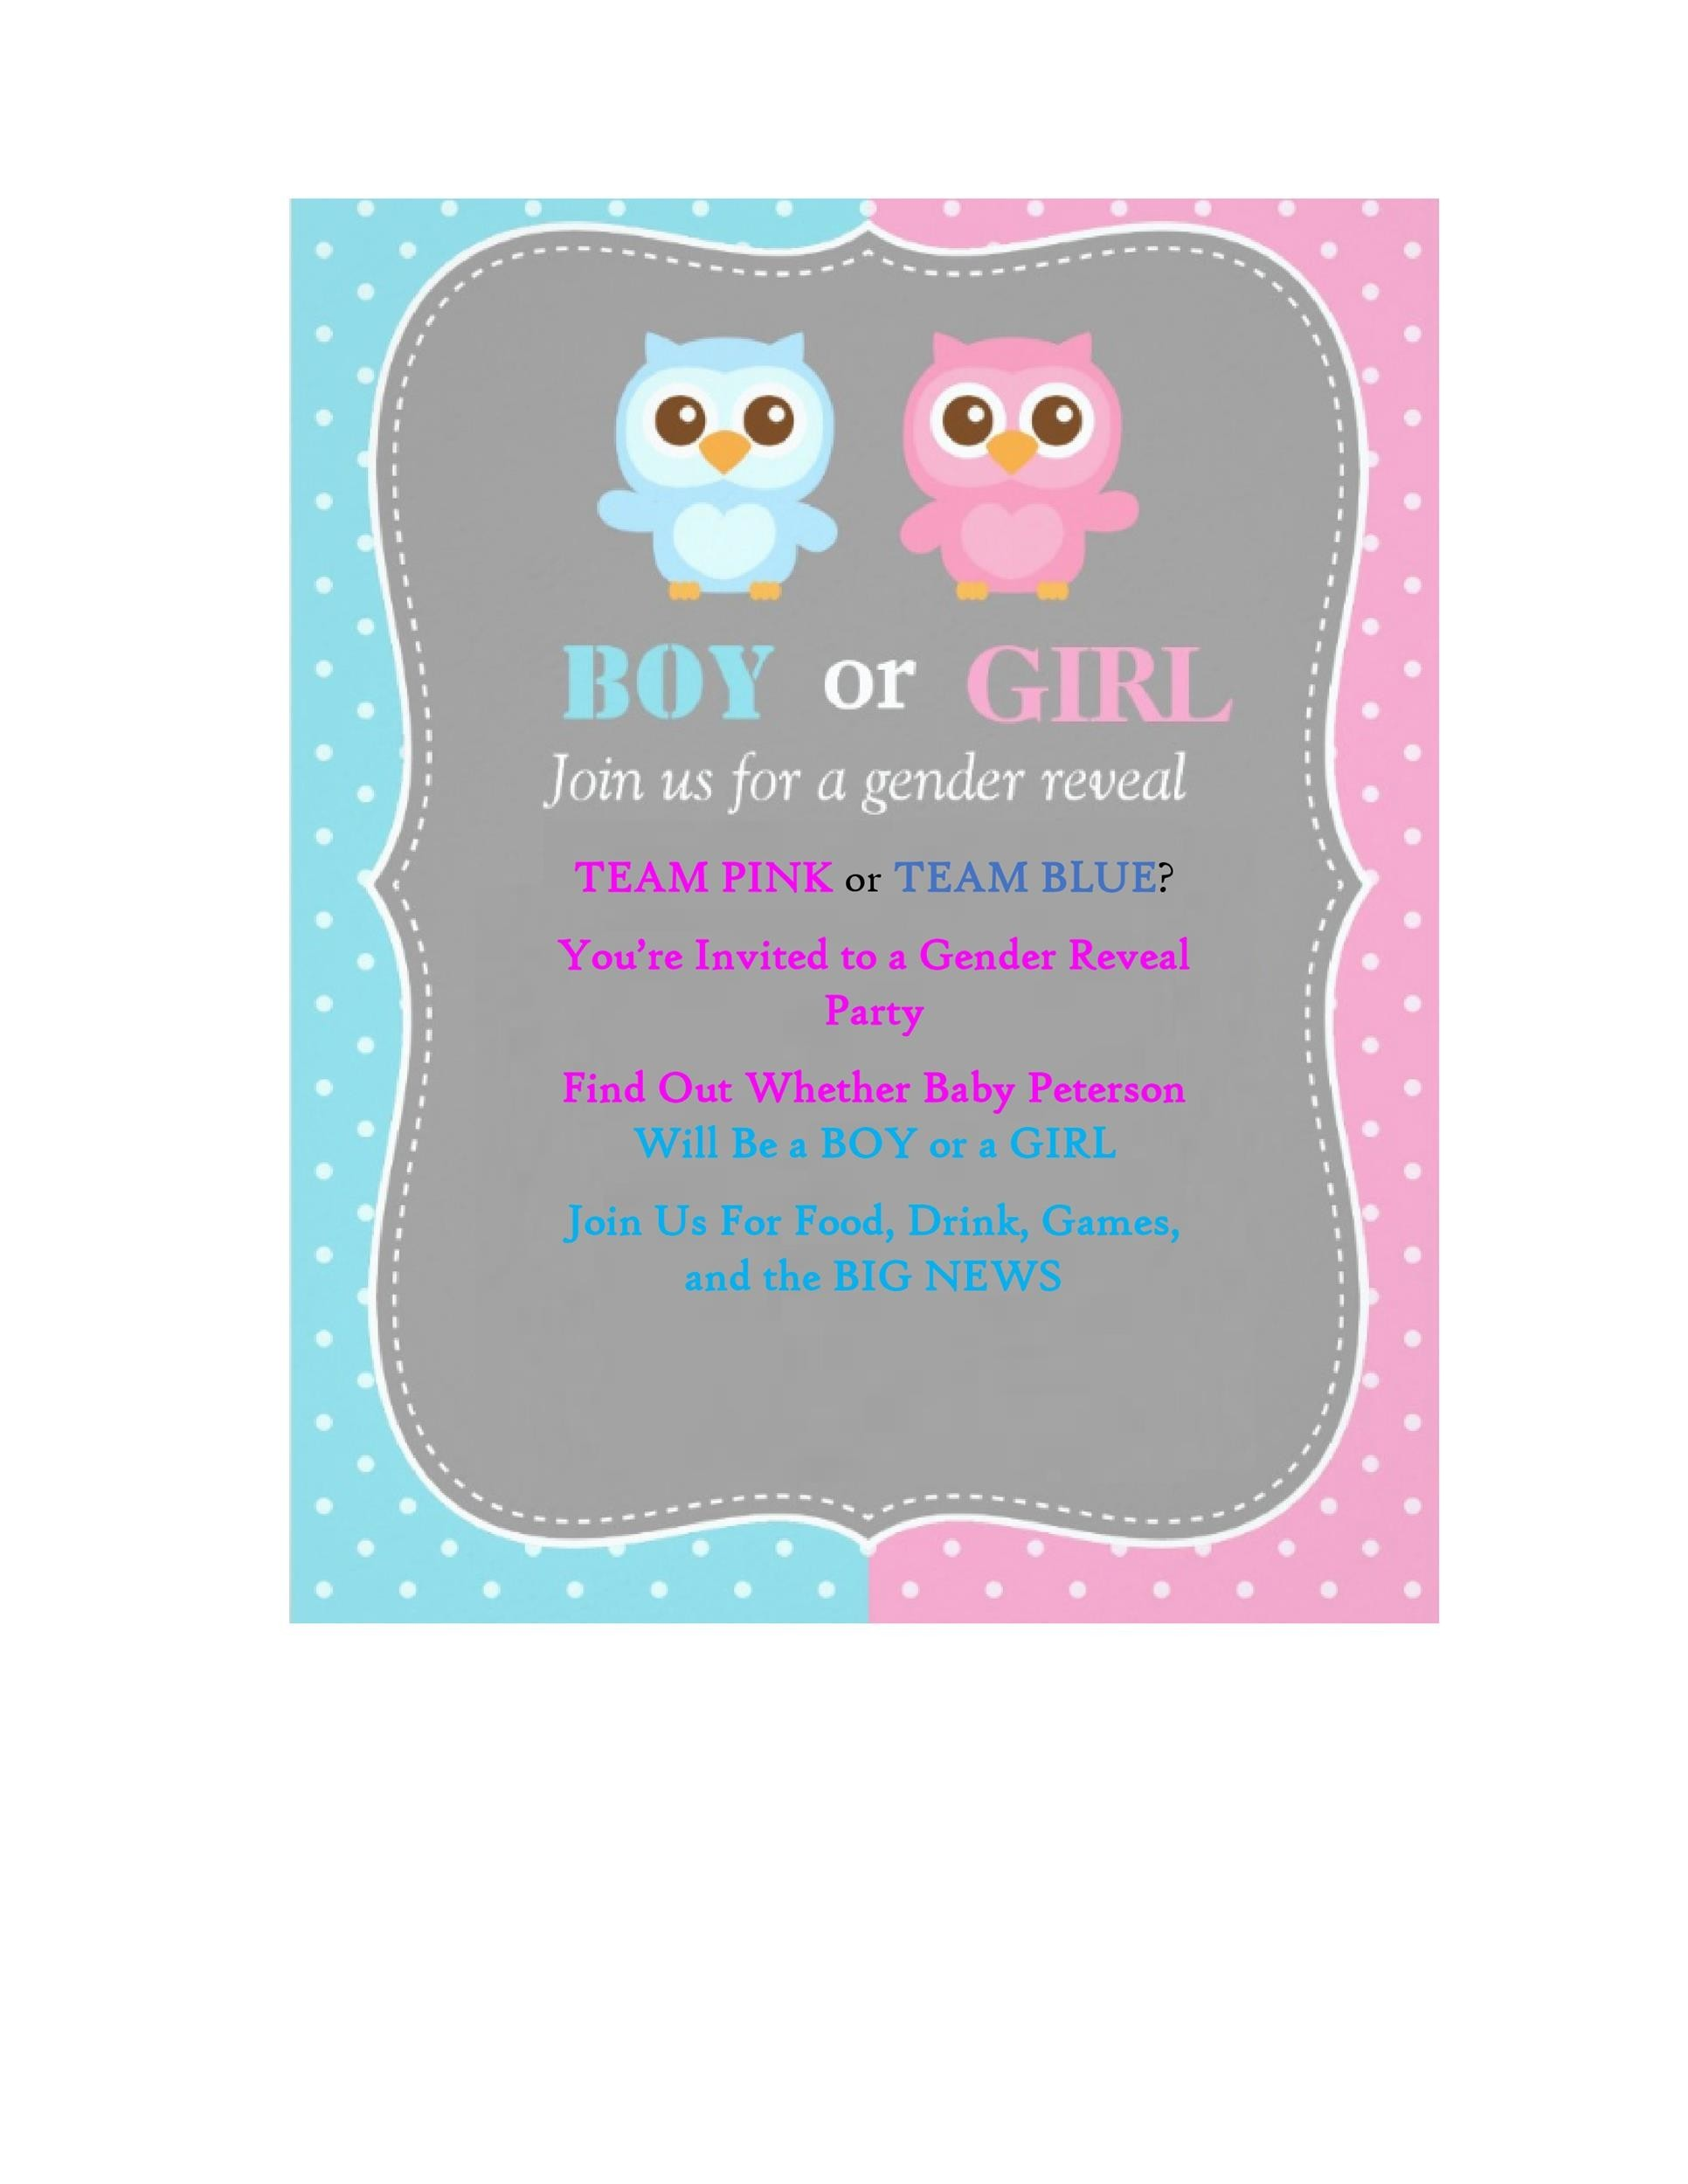 17 Free Gender Reveal Invitation Templates Template Lab – Gender Reveal Party Invitation Wording